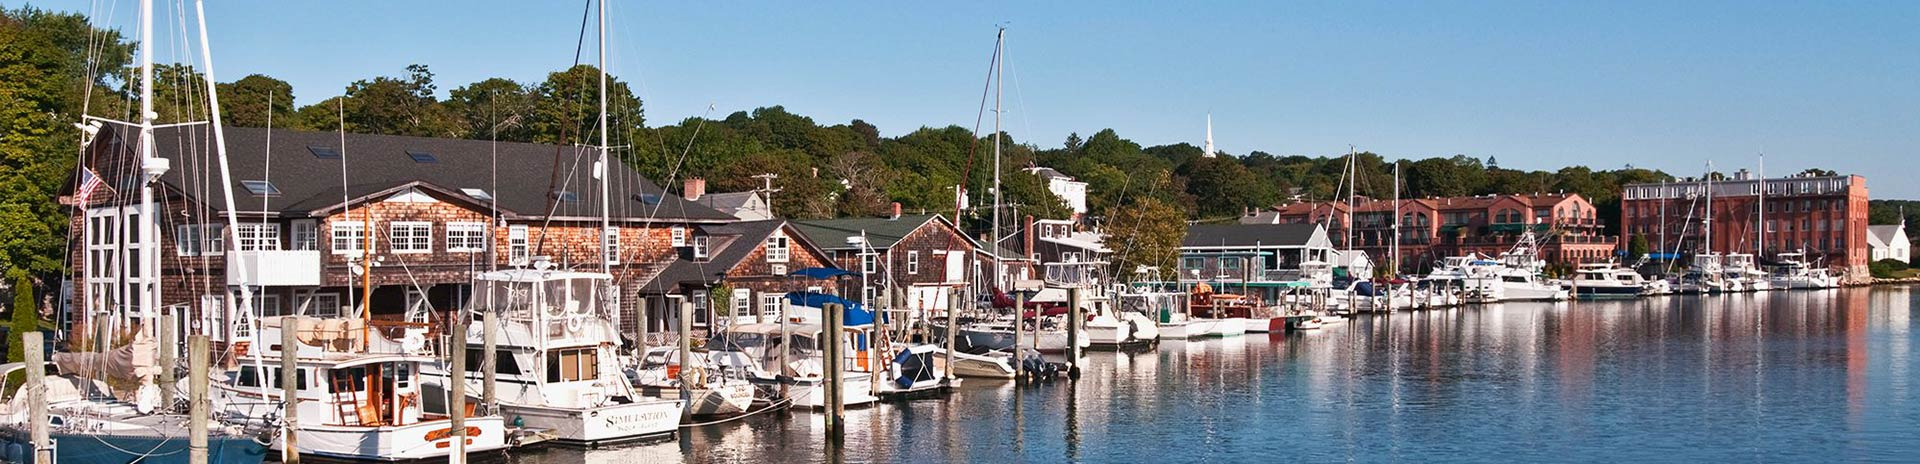 Marina in Mystic Connecticut